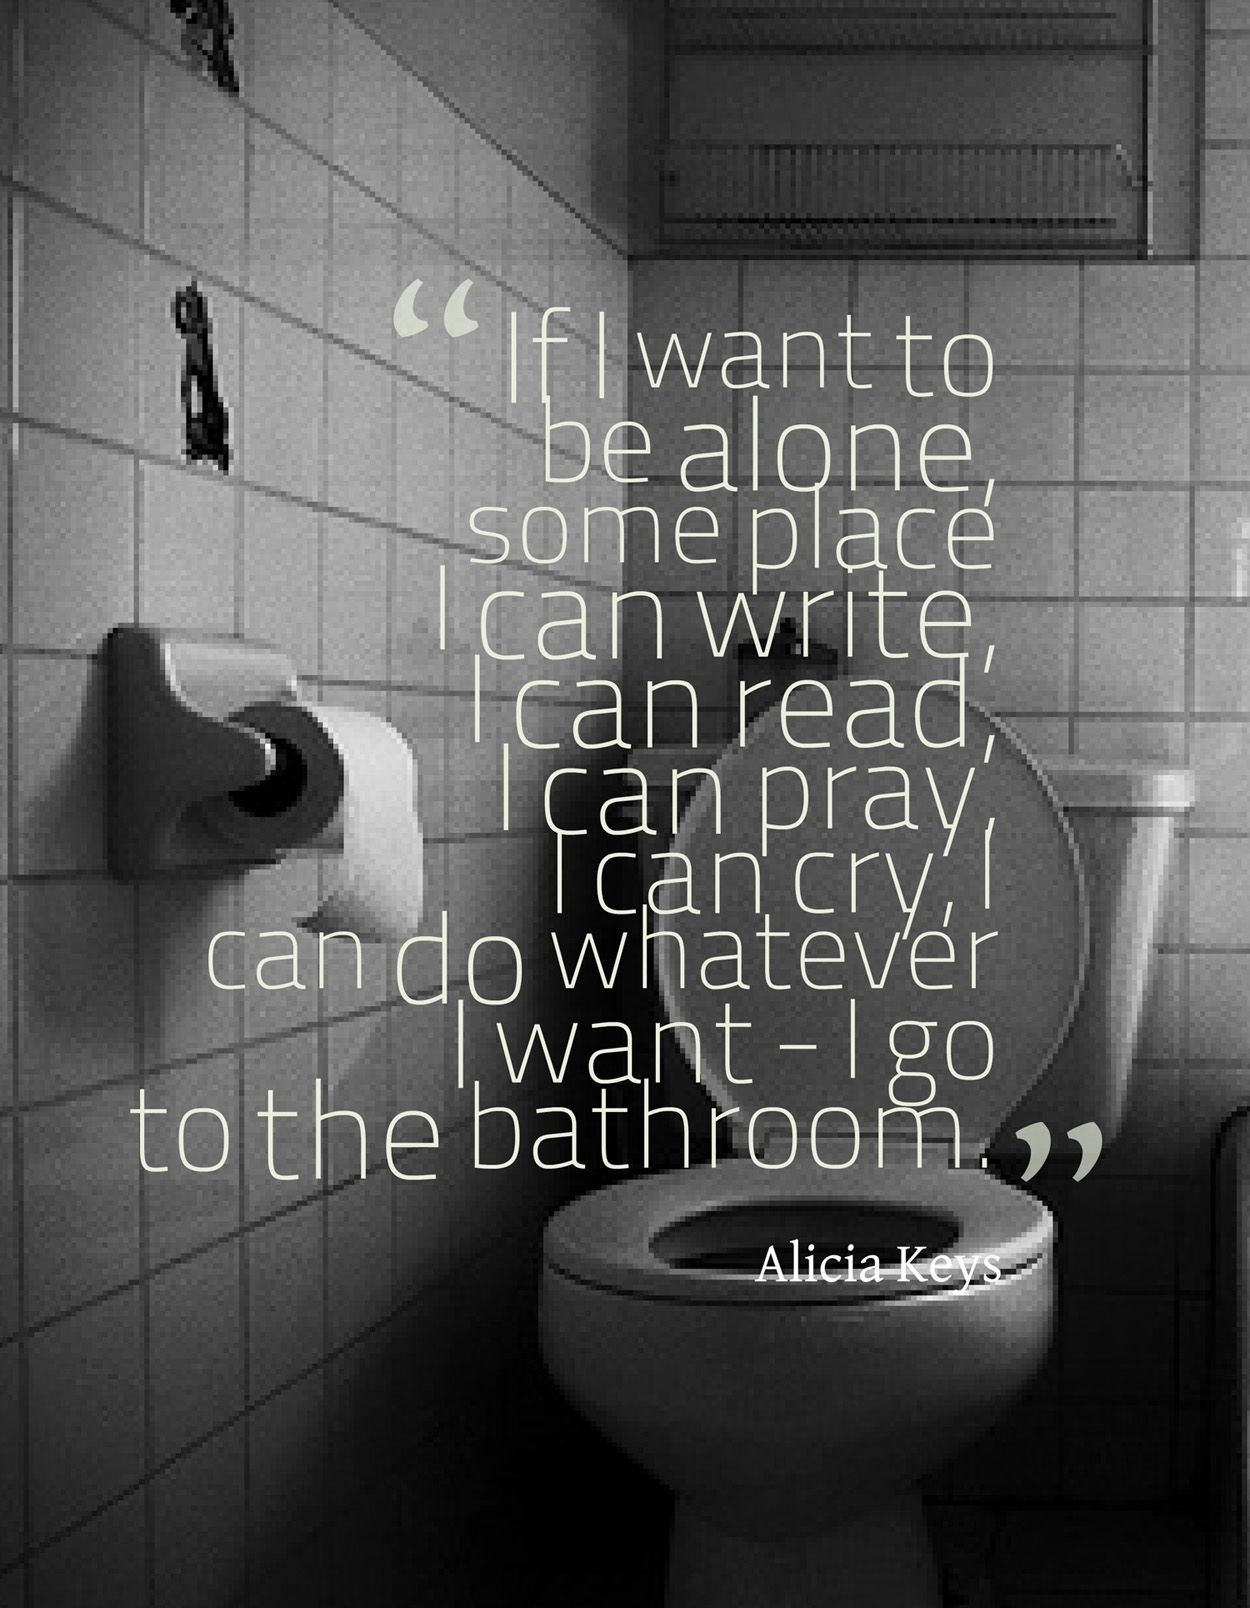 The 5 Greatest Bathroom Quotes Of All Time (Part 5)  Bathroom